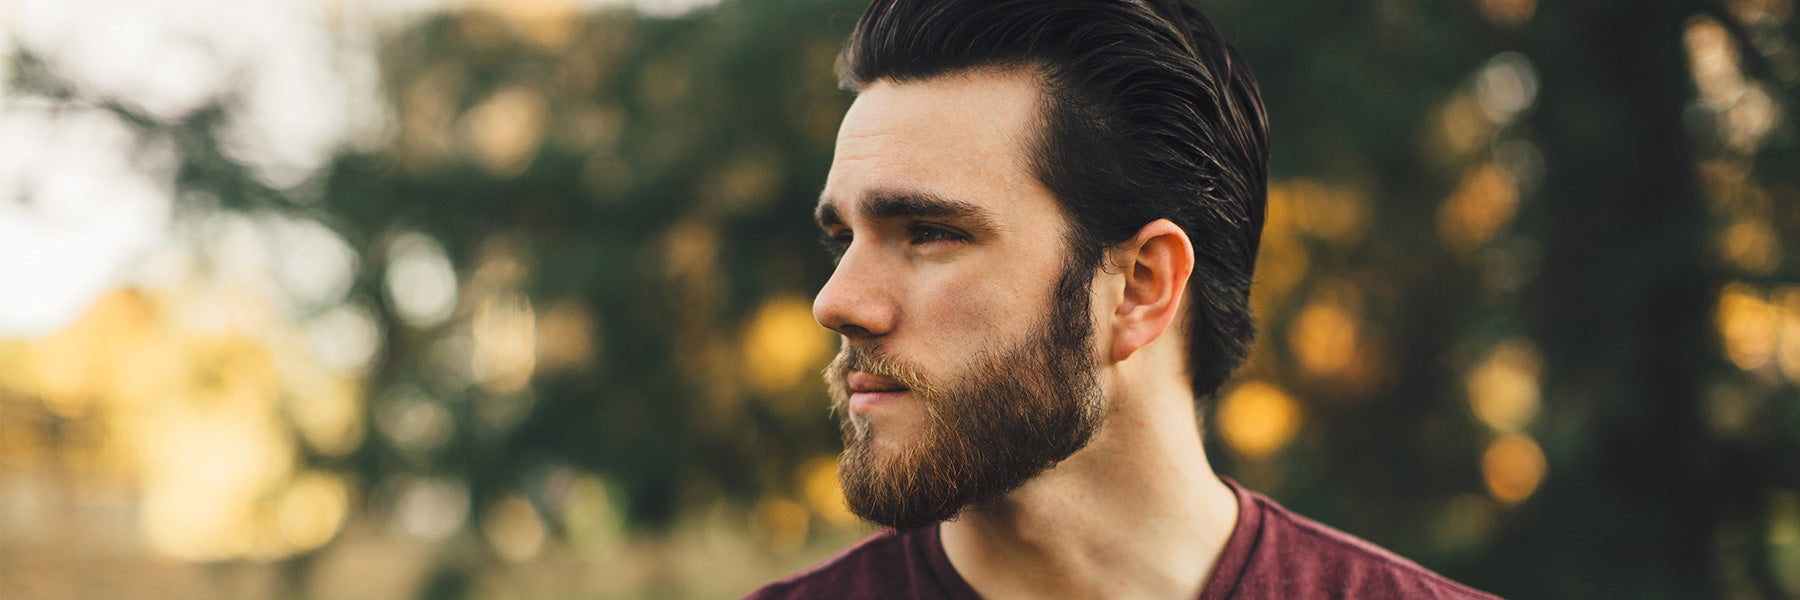 Top 6 Beard Growing Mistakes (and how to avoid them)